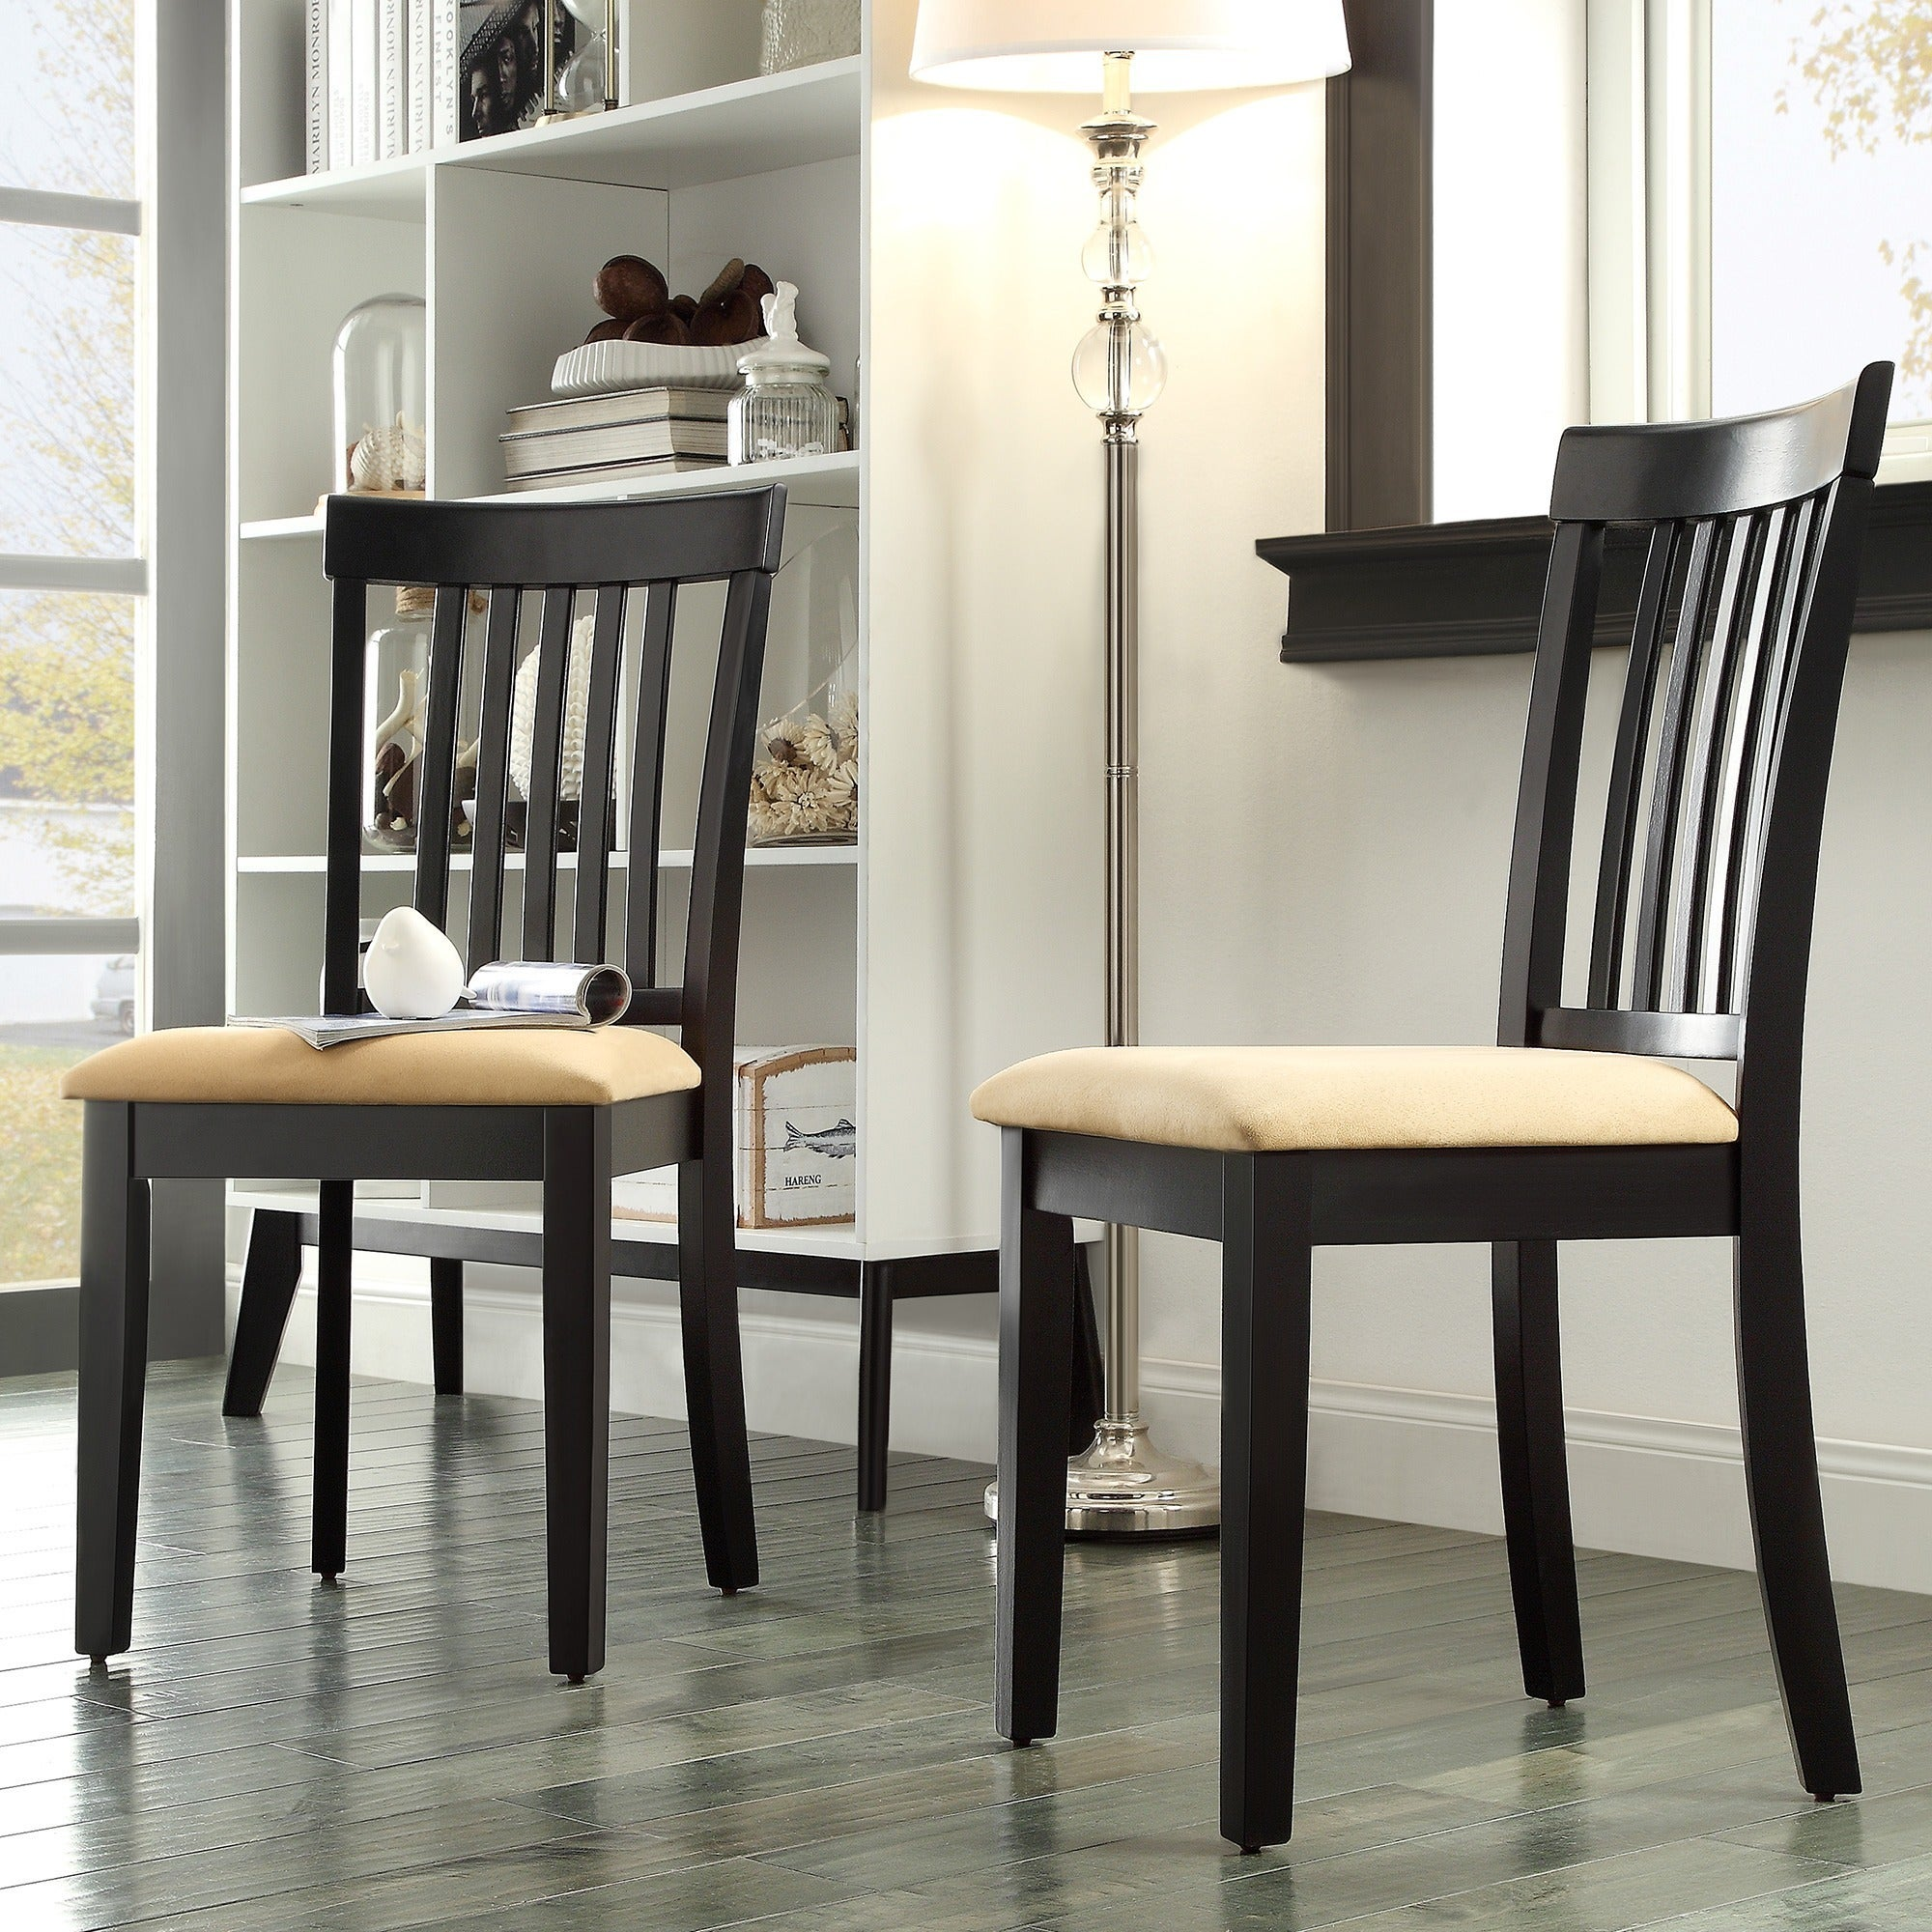 Wilmington Black Dining Chair (Set of 2) by iNSPIRE Q Cla...